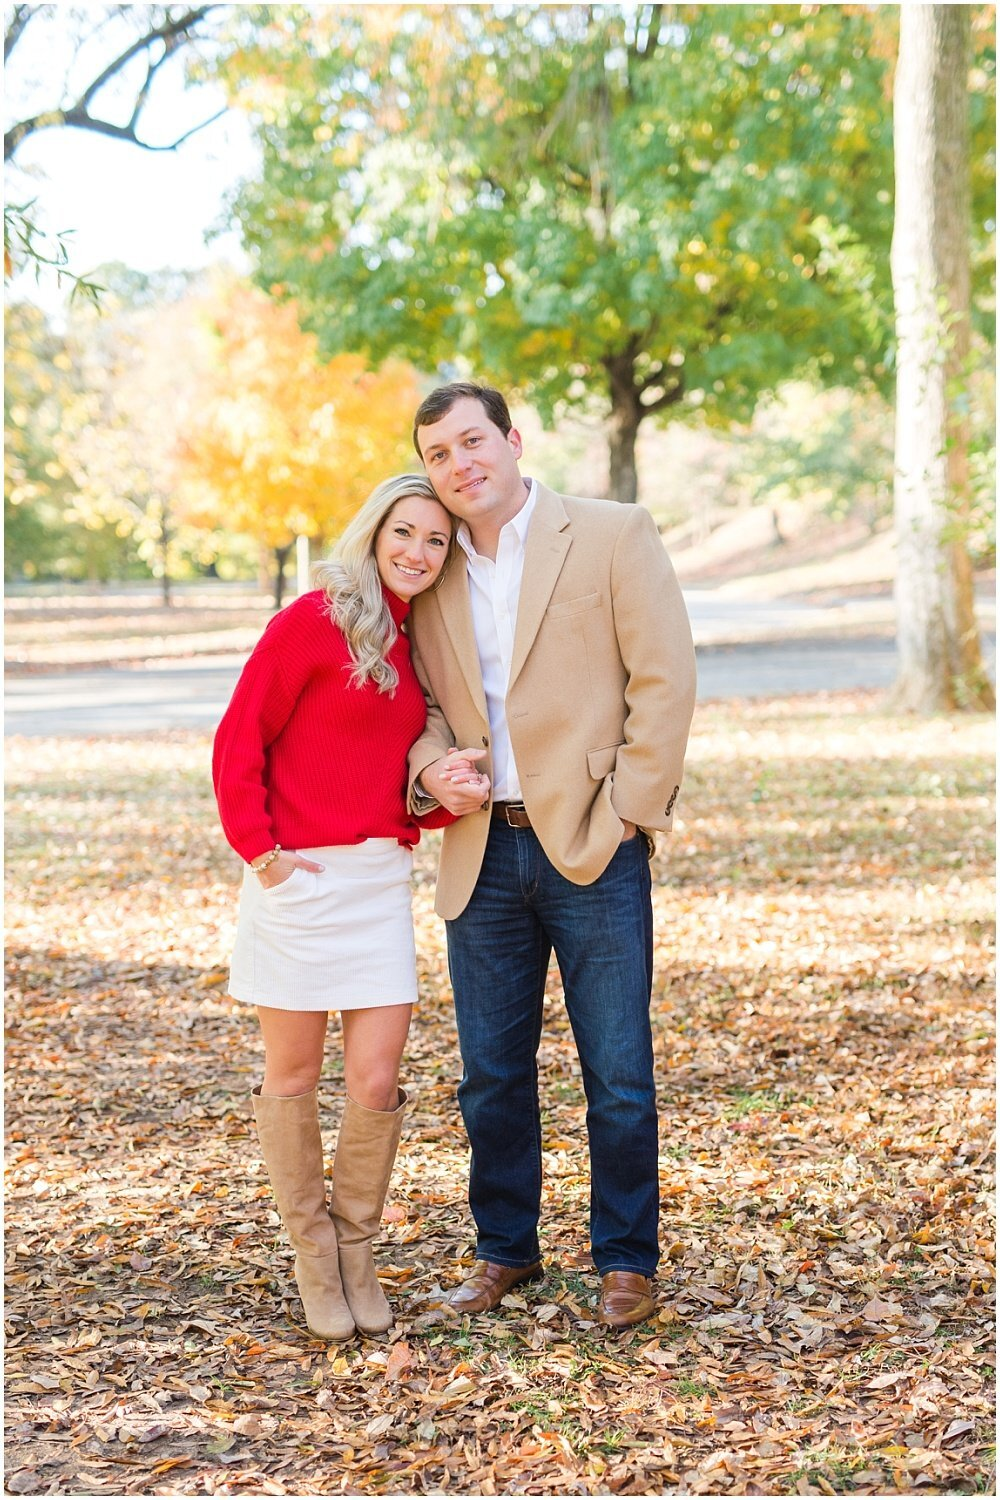 atlanta-georgia-wedding-photographer-piedmont-park-engagement-laura-barnes-photo-andrews-12